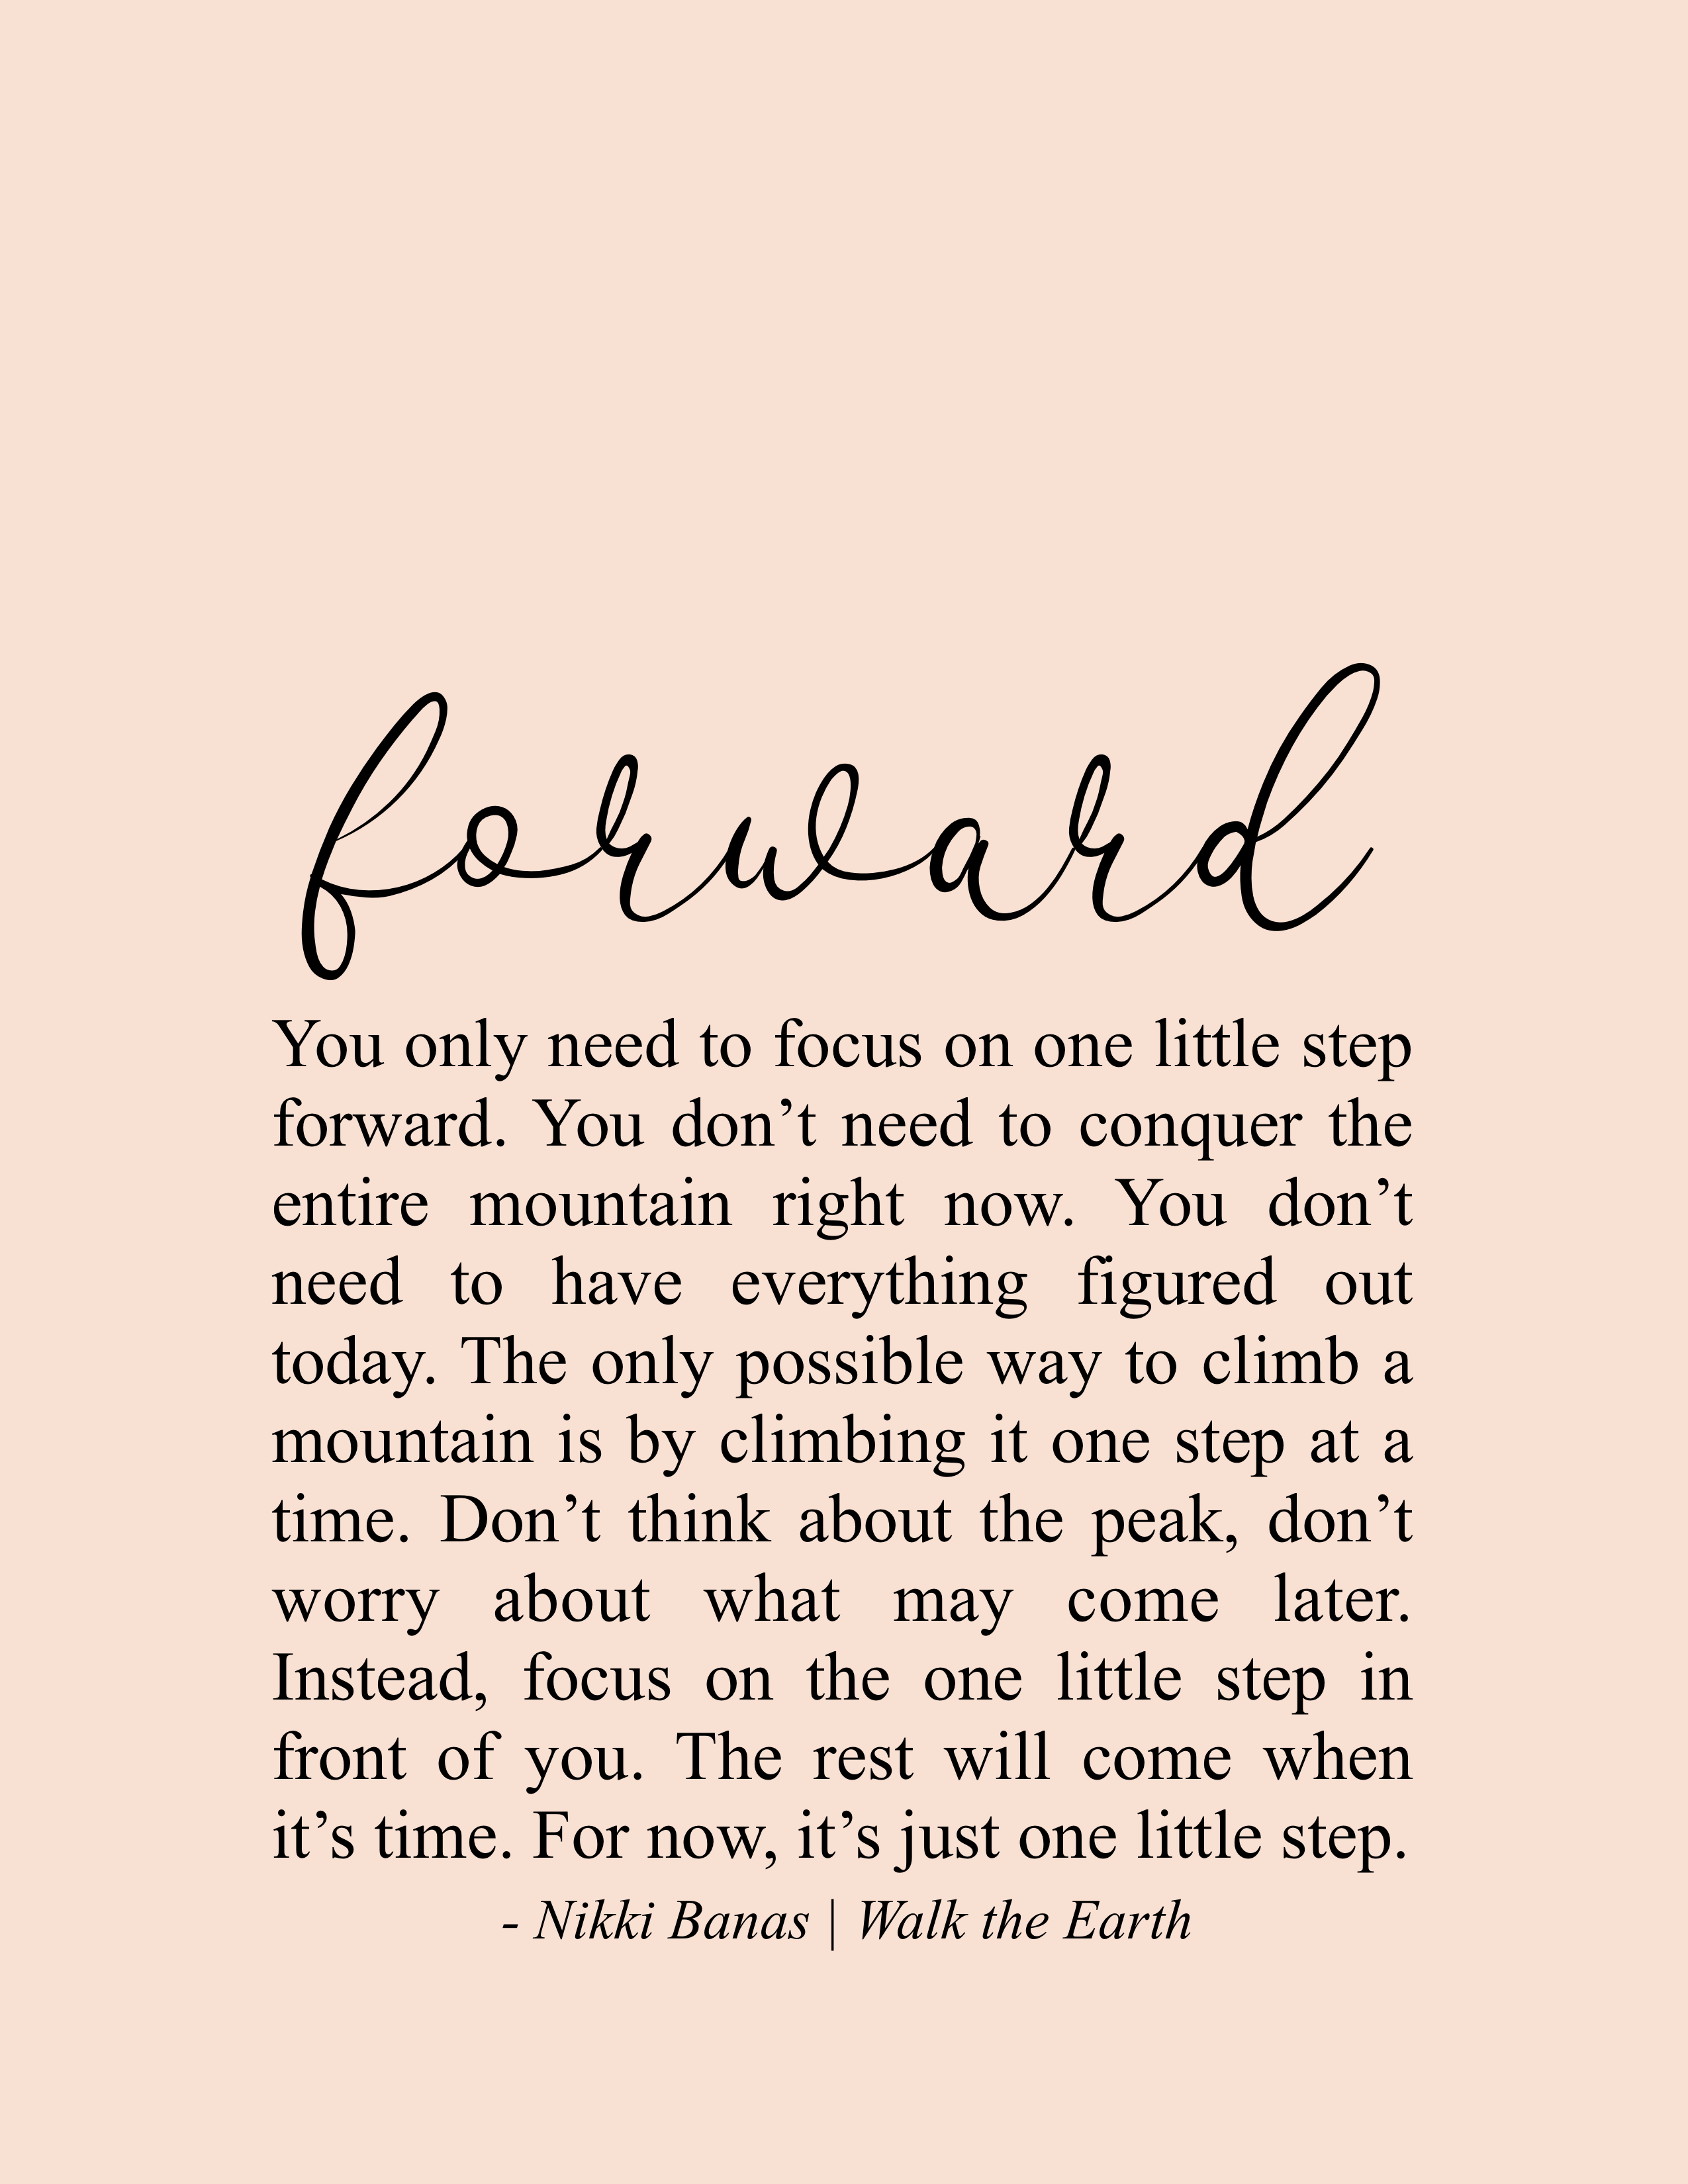 Keep Moving Forward Quotes Inspiration Encouragement Growth Change Nikki Banas Walk The Earth Change Encourageme Encouragement Quotes Words Self Quotes